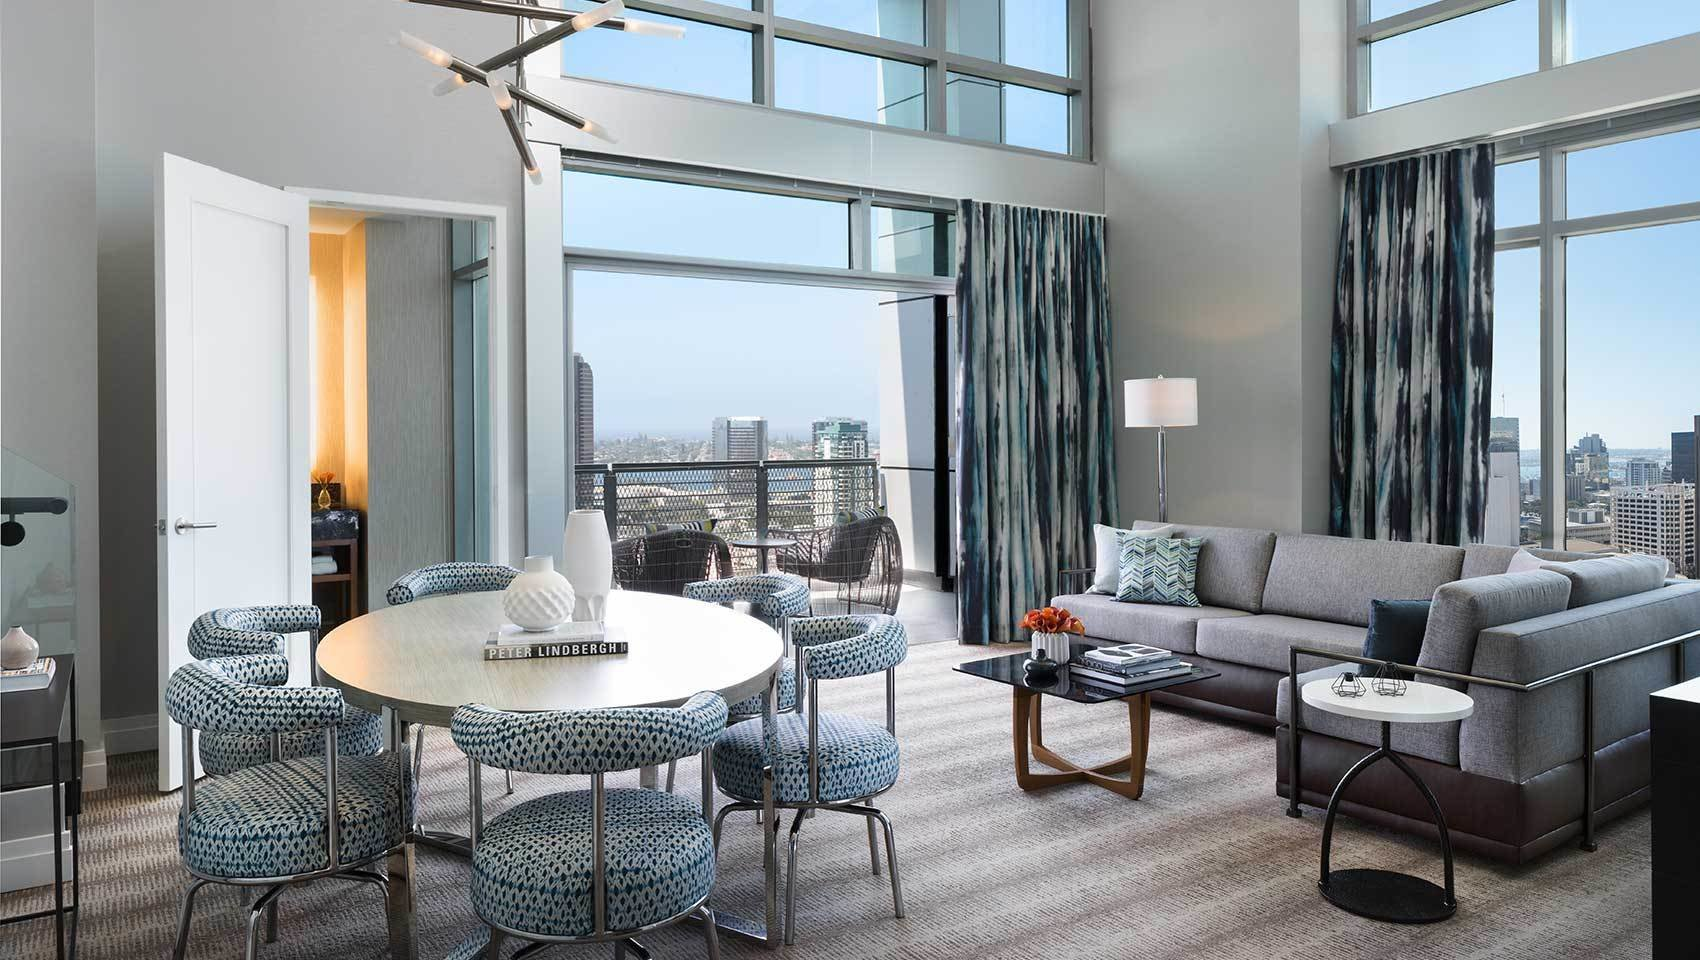 Best Boutique Hotel Photos In Downtown San Diego Kimpton With Pictures